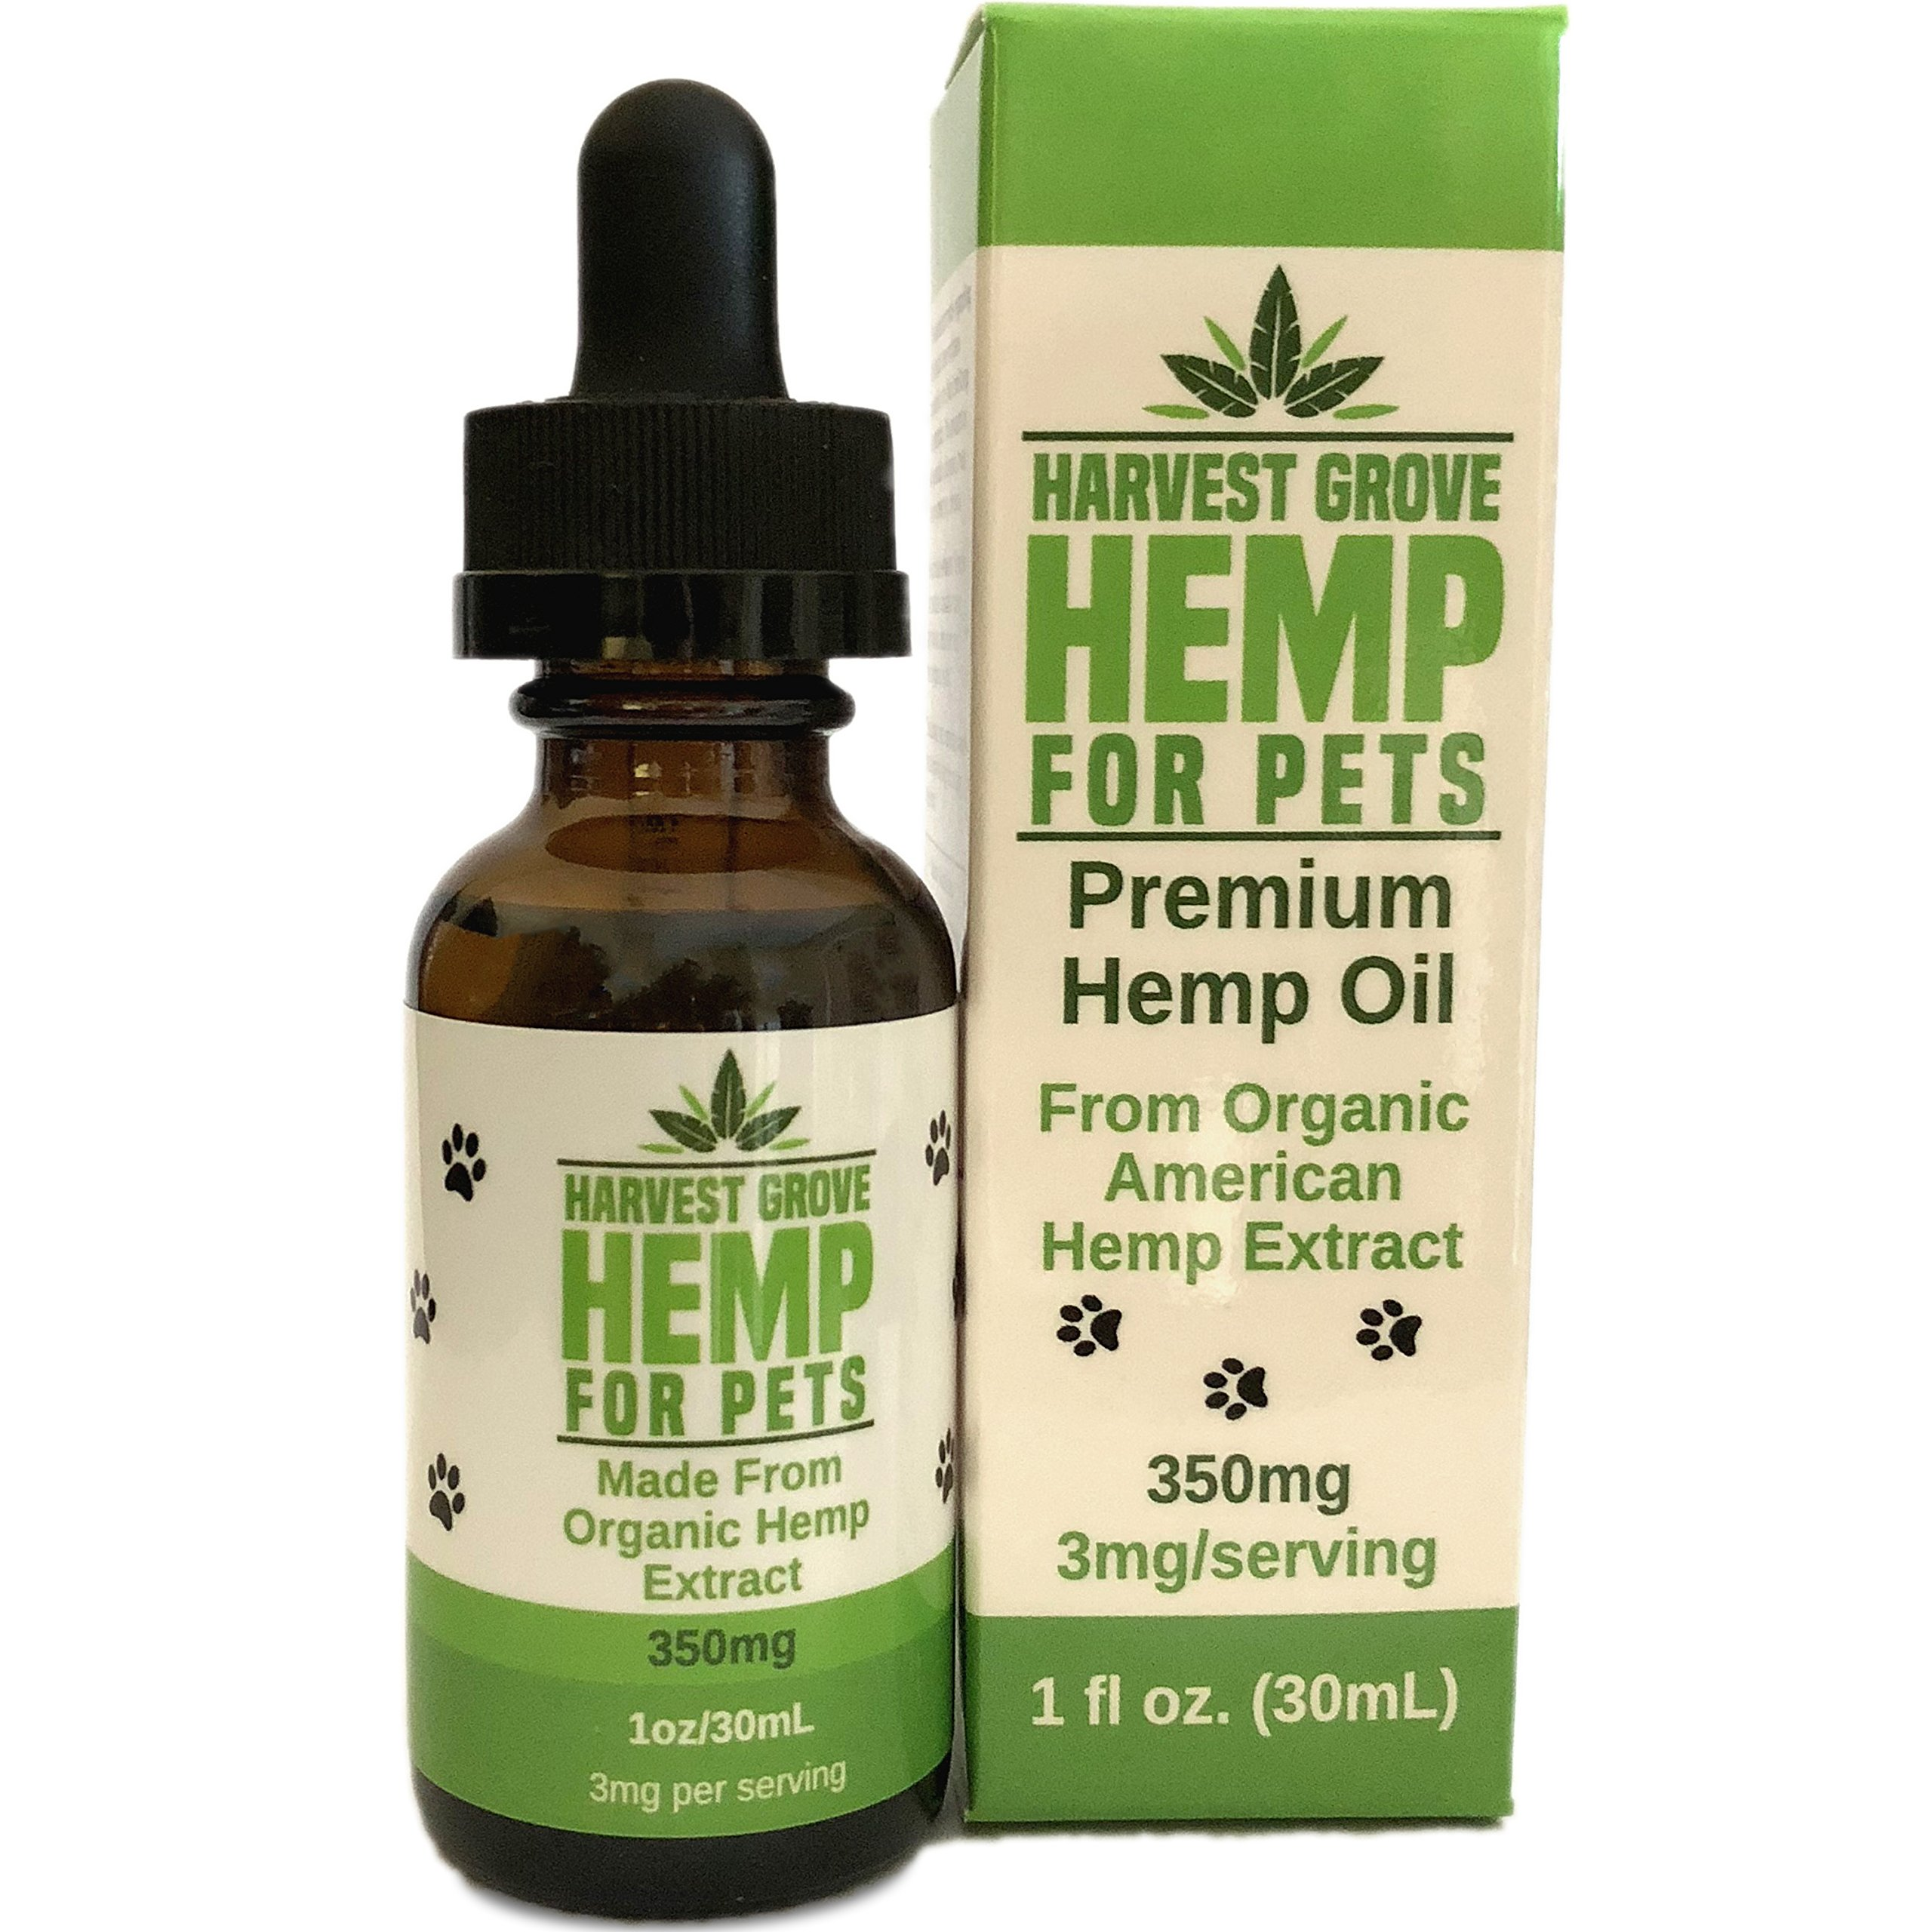 Harvest Grove Hemp Hemp Oil For Pets By Cats And Dogs - Unflavored - Made From Organic Hemp - Pure Hemp Extract - For Pain - Stress - Healthy Hips And Joints - Anxiety - (1oz/350mg) by Harvest Grove Hemp